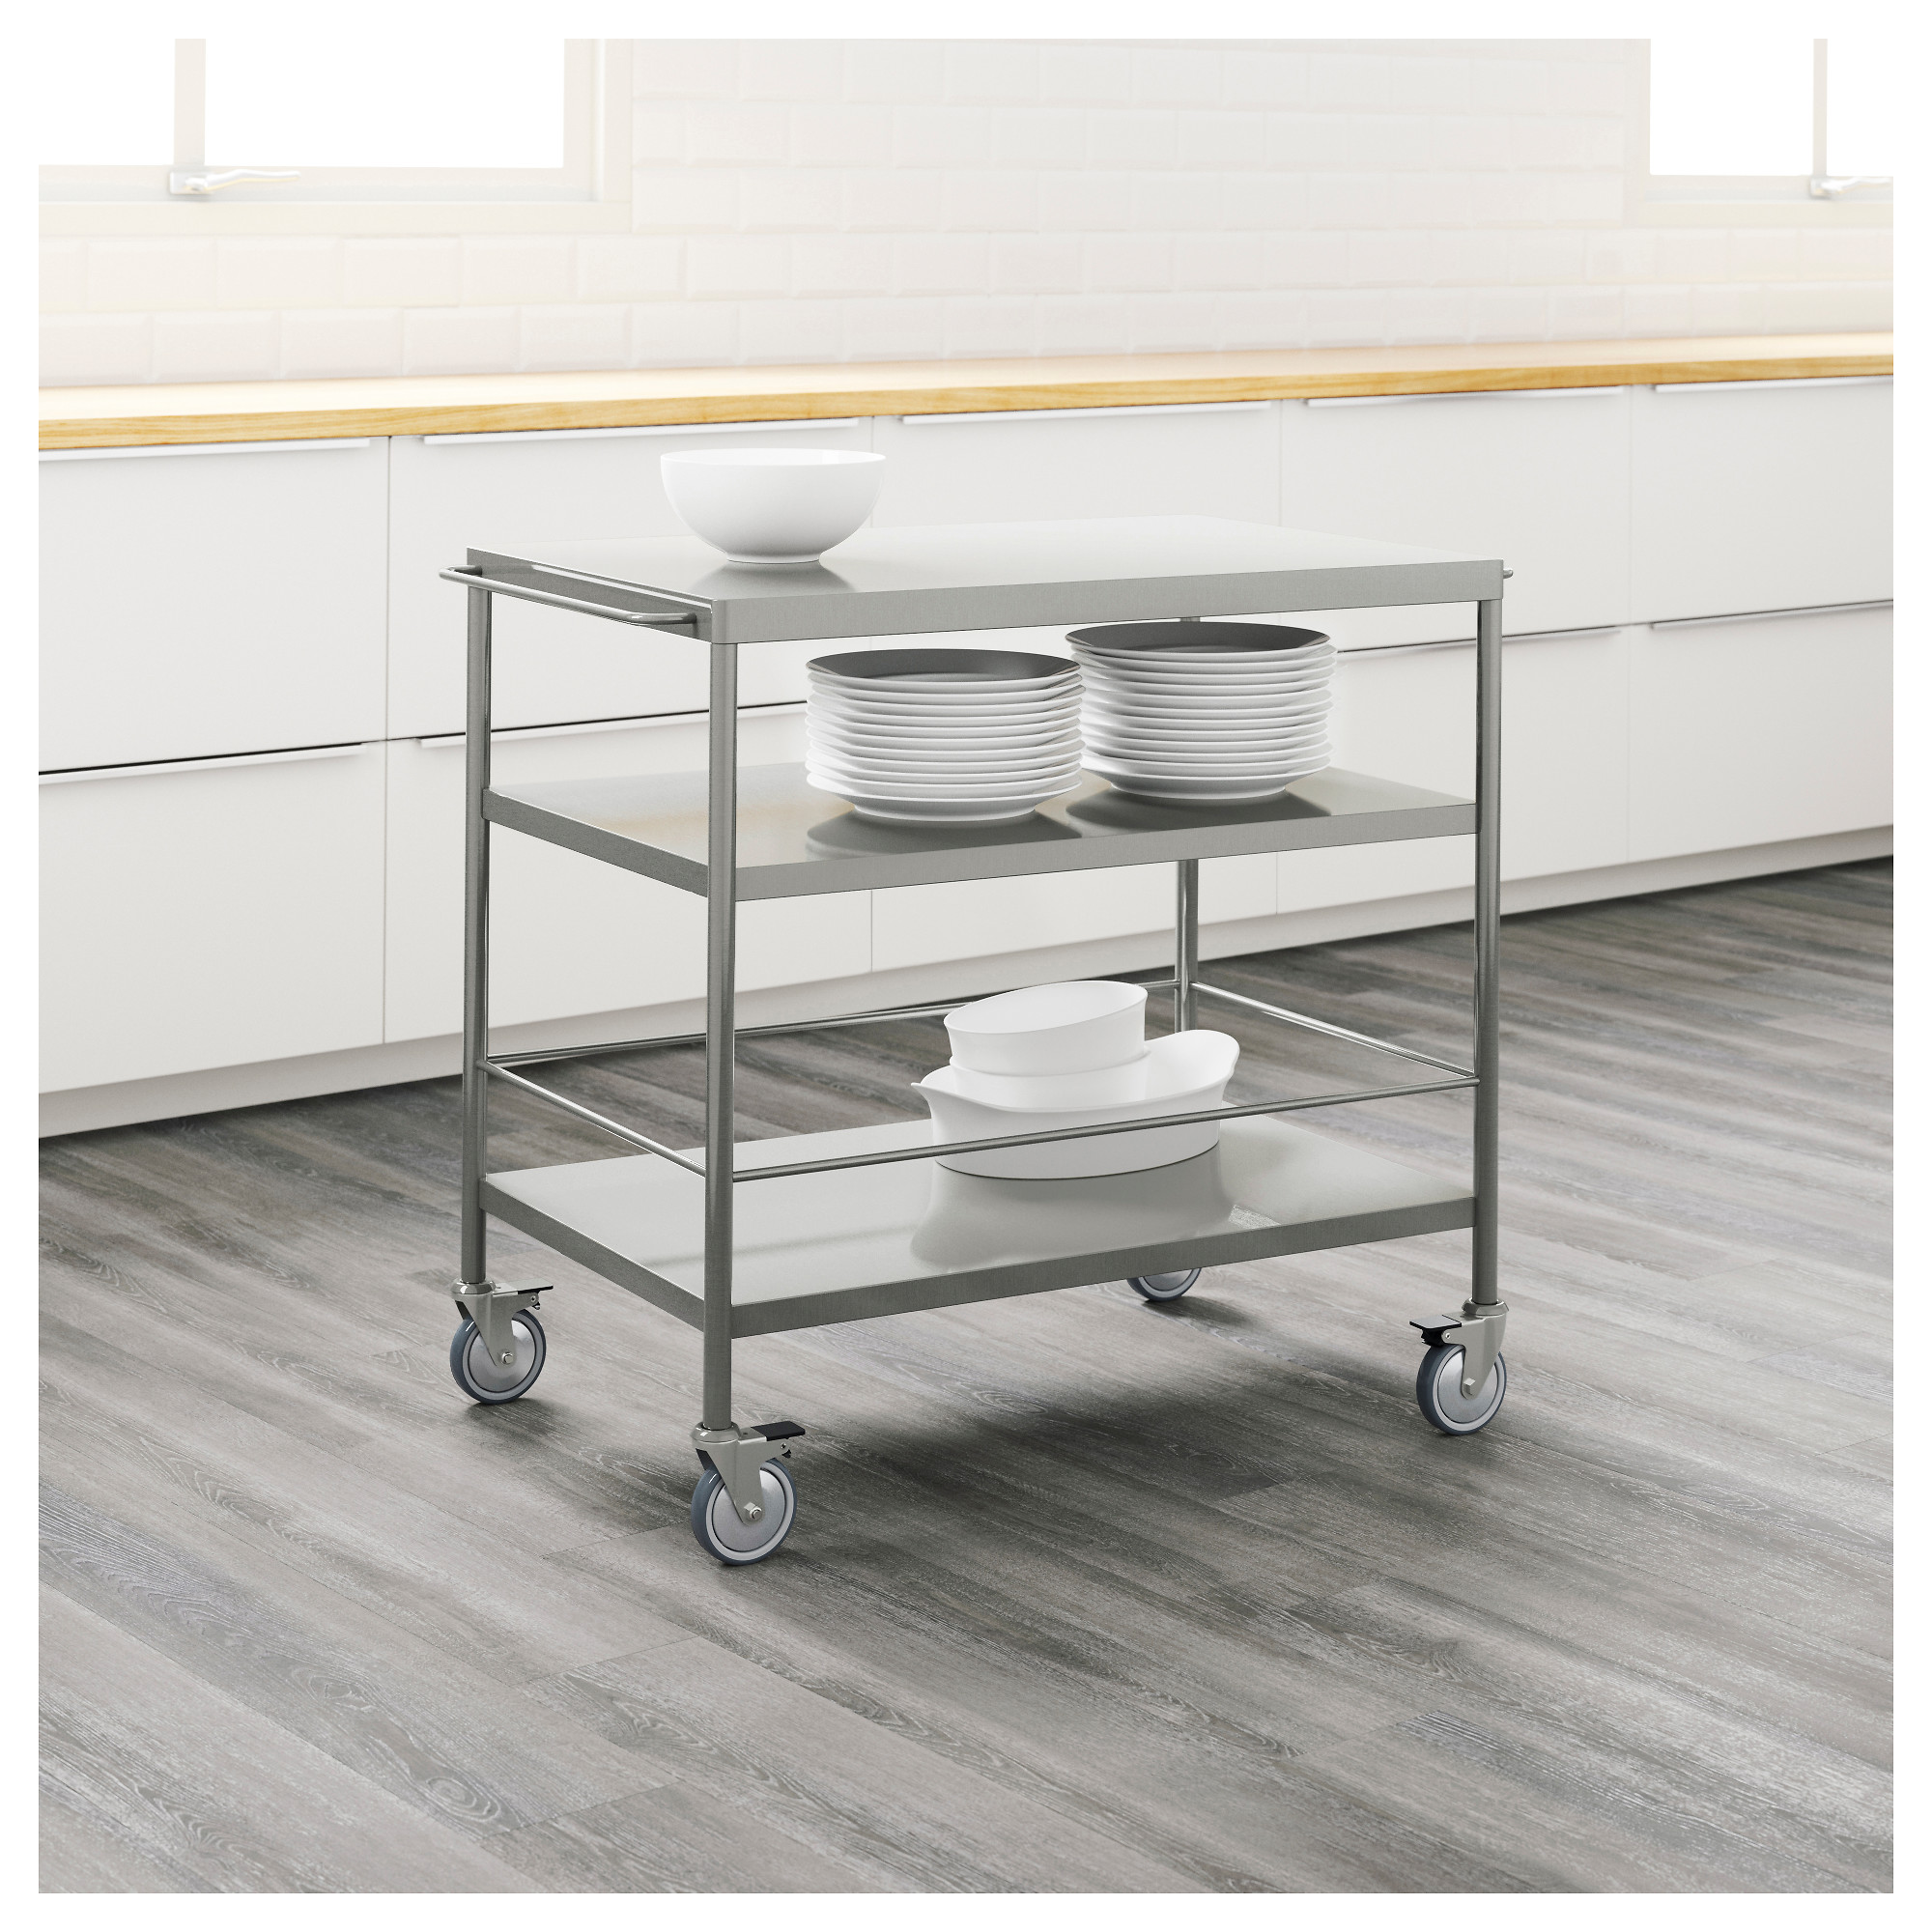 Ikea Kitchen Storage Cart Flytta Kitchen Cart Ikea